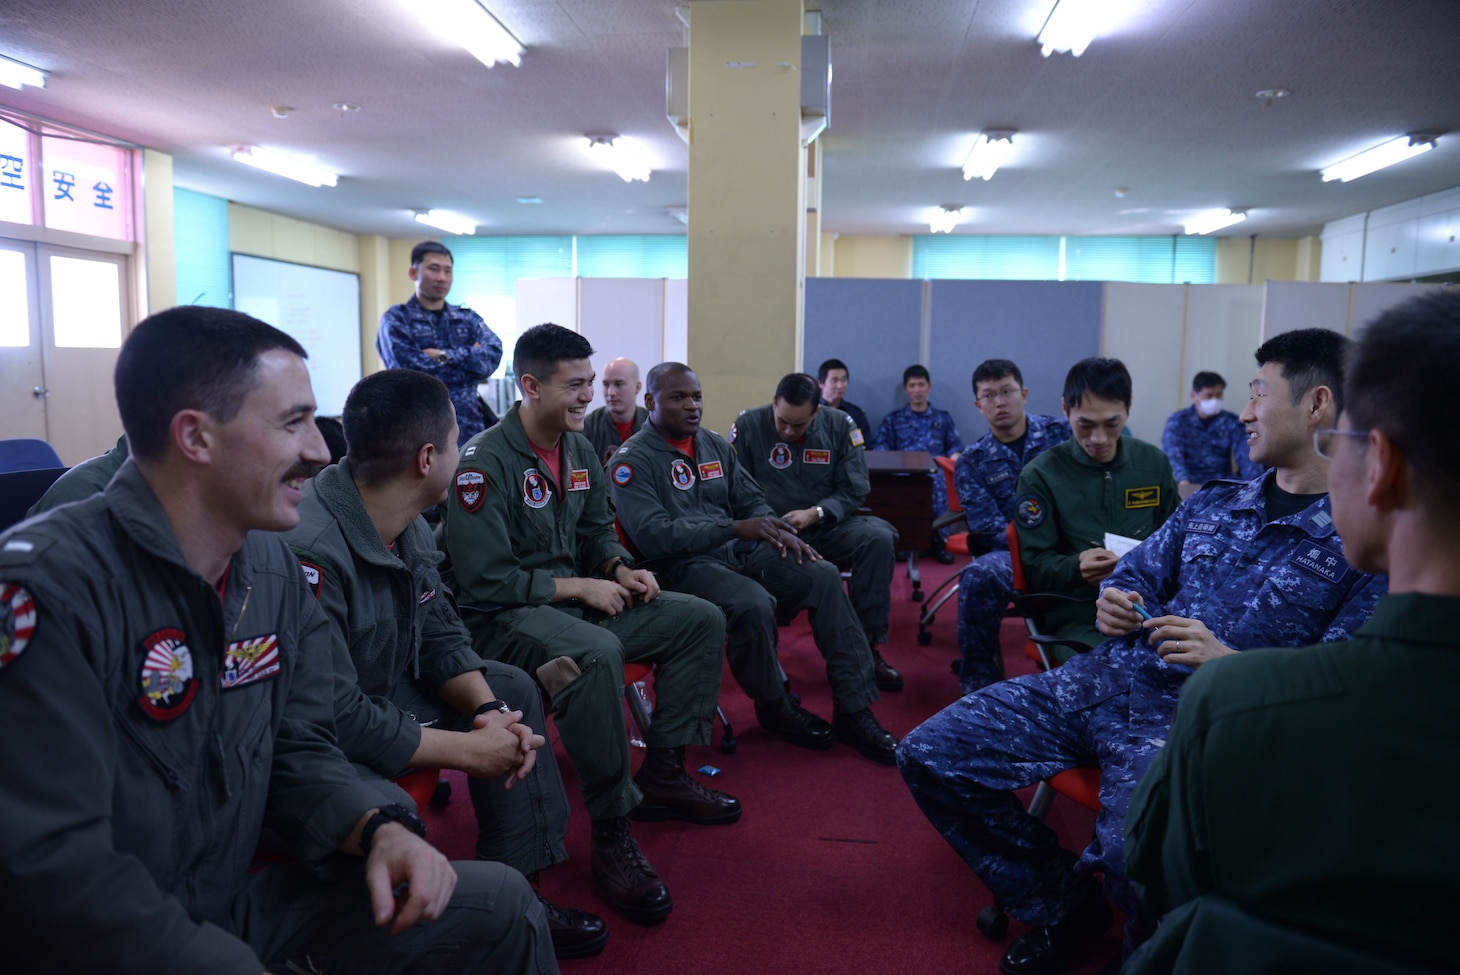 """ATSUGI, Japan (Mar. 14, 2019) — Sailors assigned to the """"War Eagles"""" of Patrol Squadron (VP) 16 meet with the Japan Maritime Self-Defense Force (JMSDF) Sailors assigned to (VP) 3. VP-16 took part in a Trilateral Anti-Submarine Warfare Exercise which included Royal Navy, JMSDF and U.S. assets."""